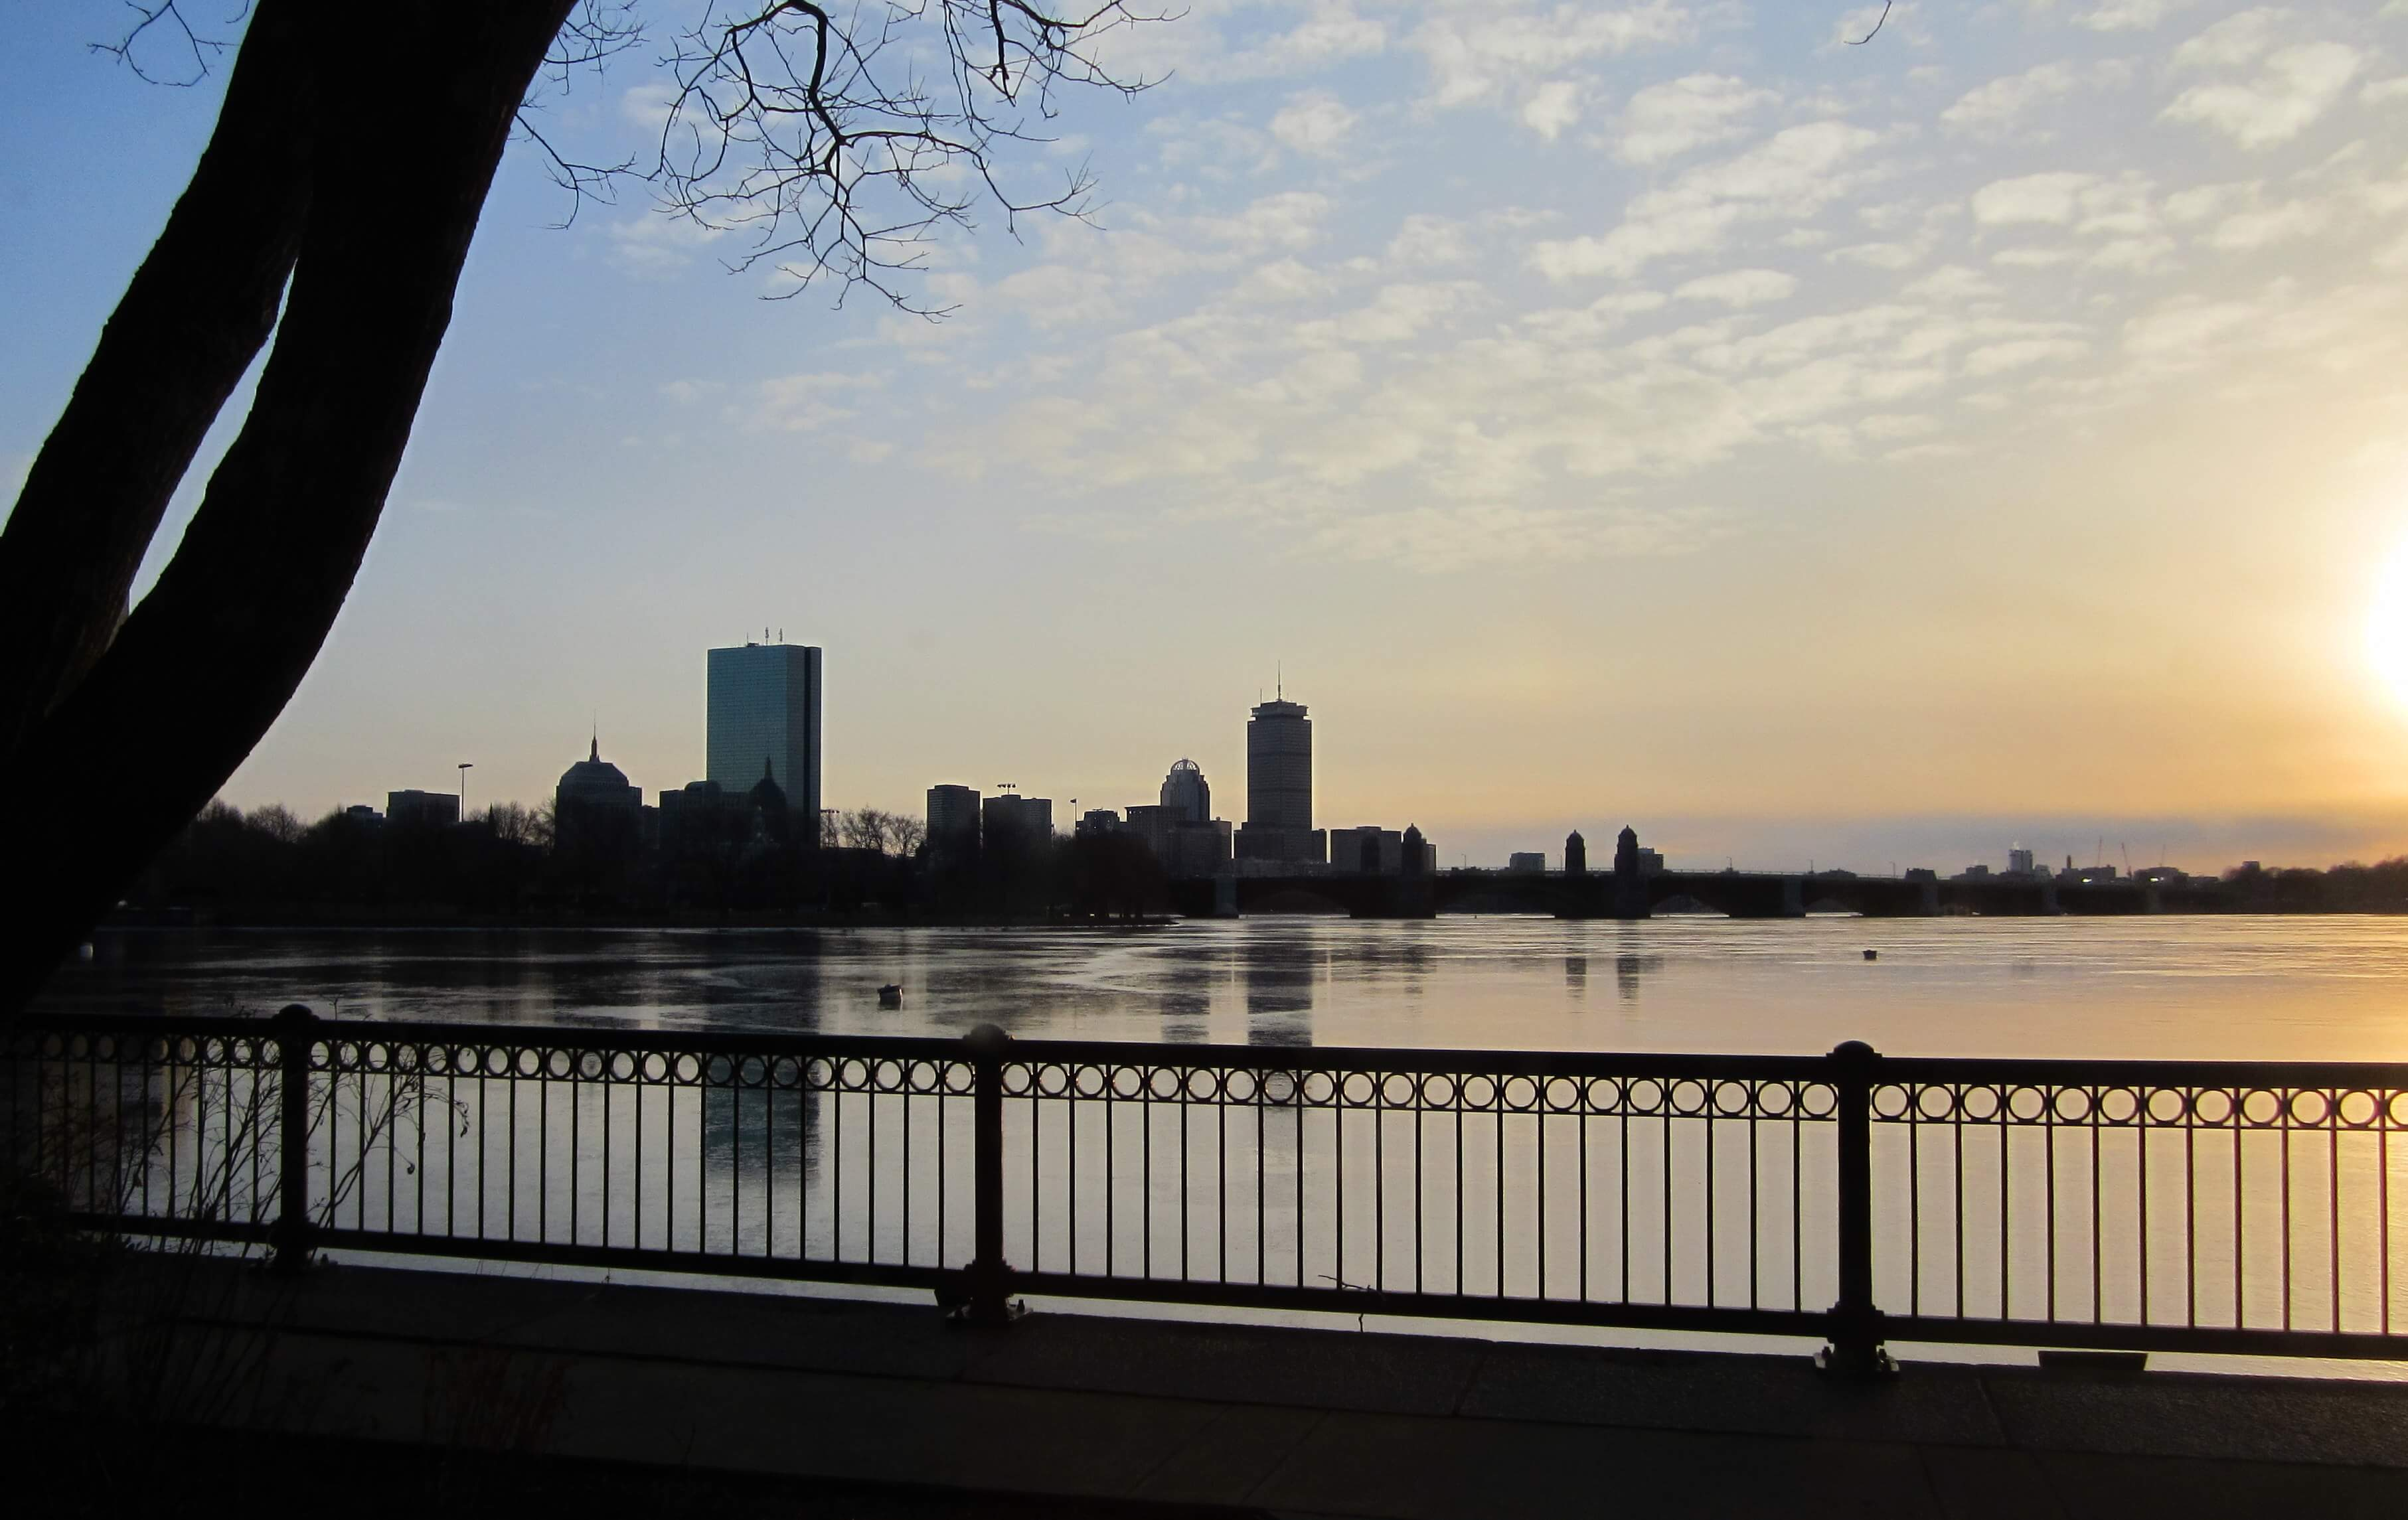 Sunset over Charles River